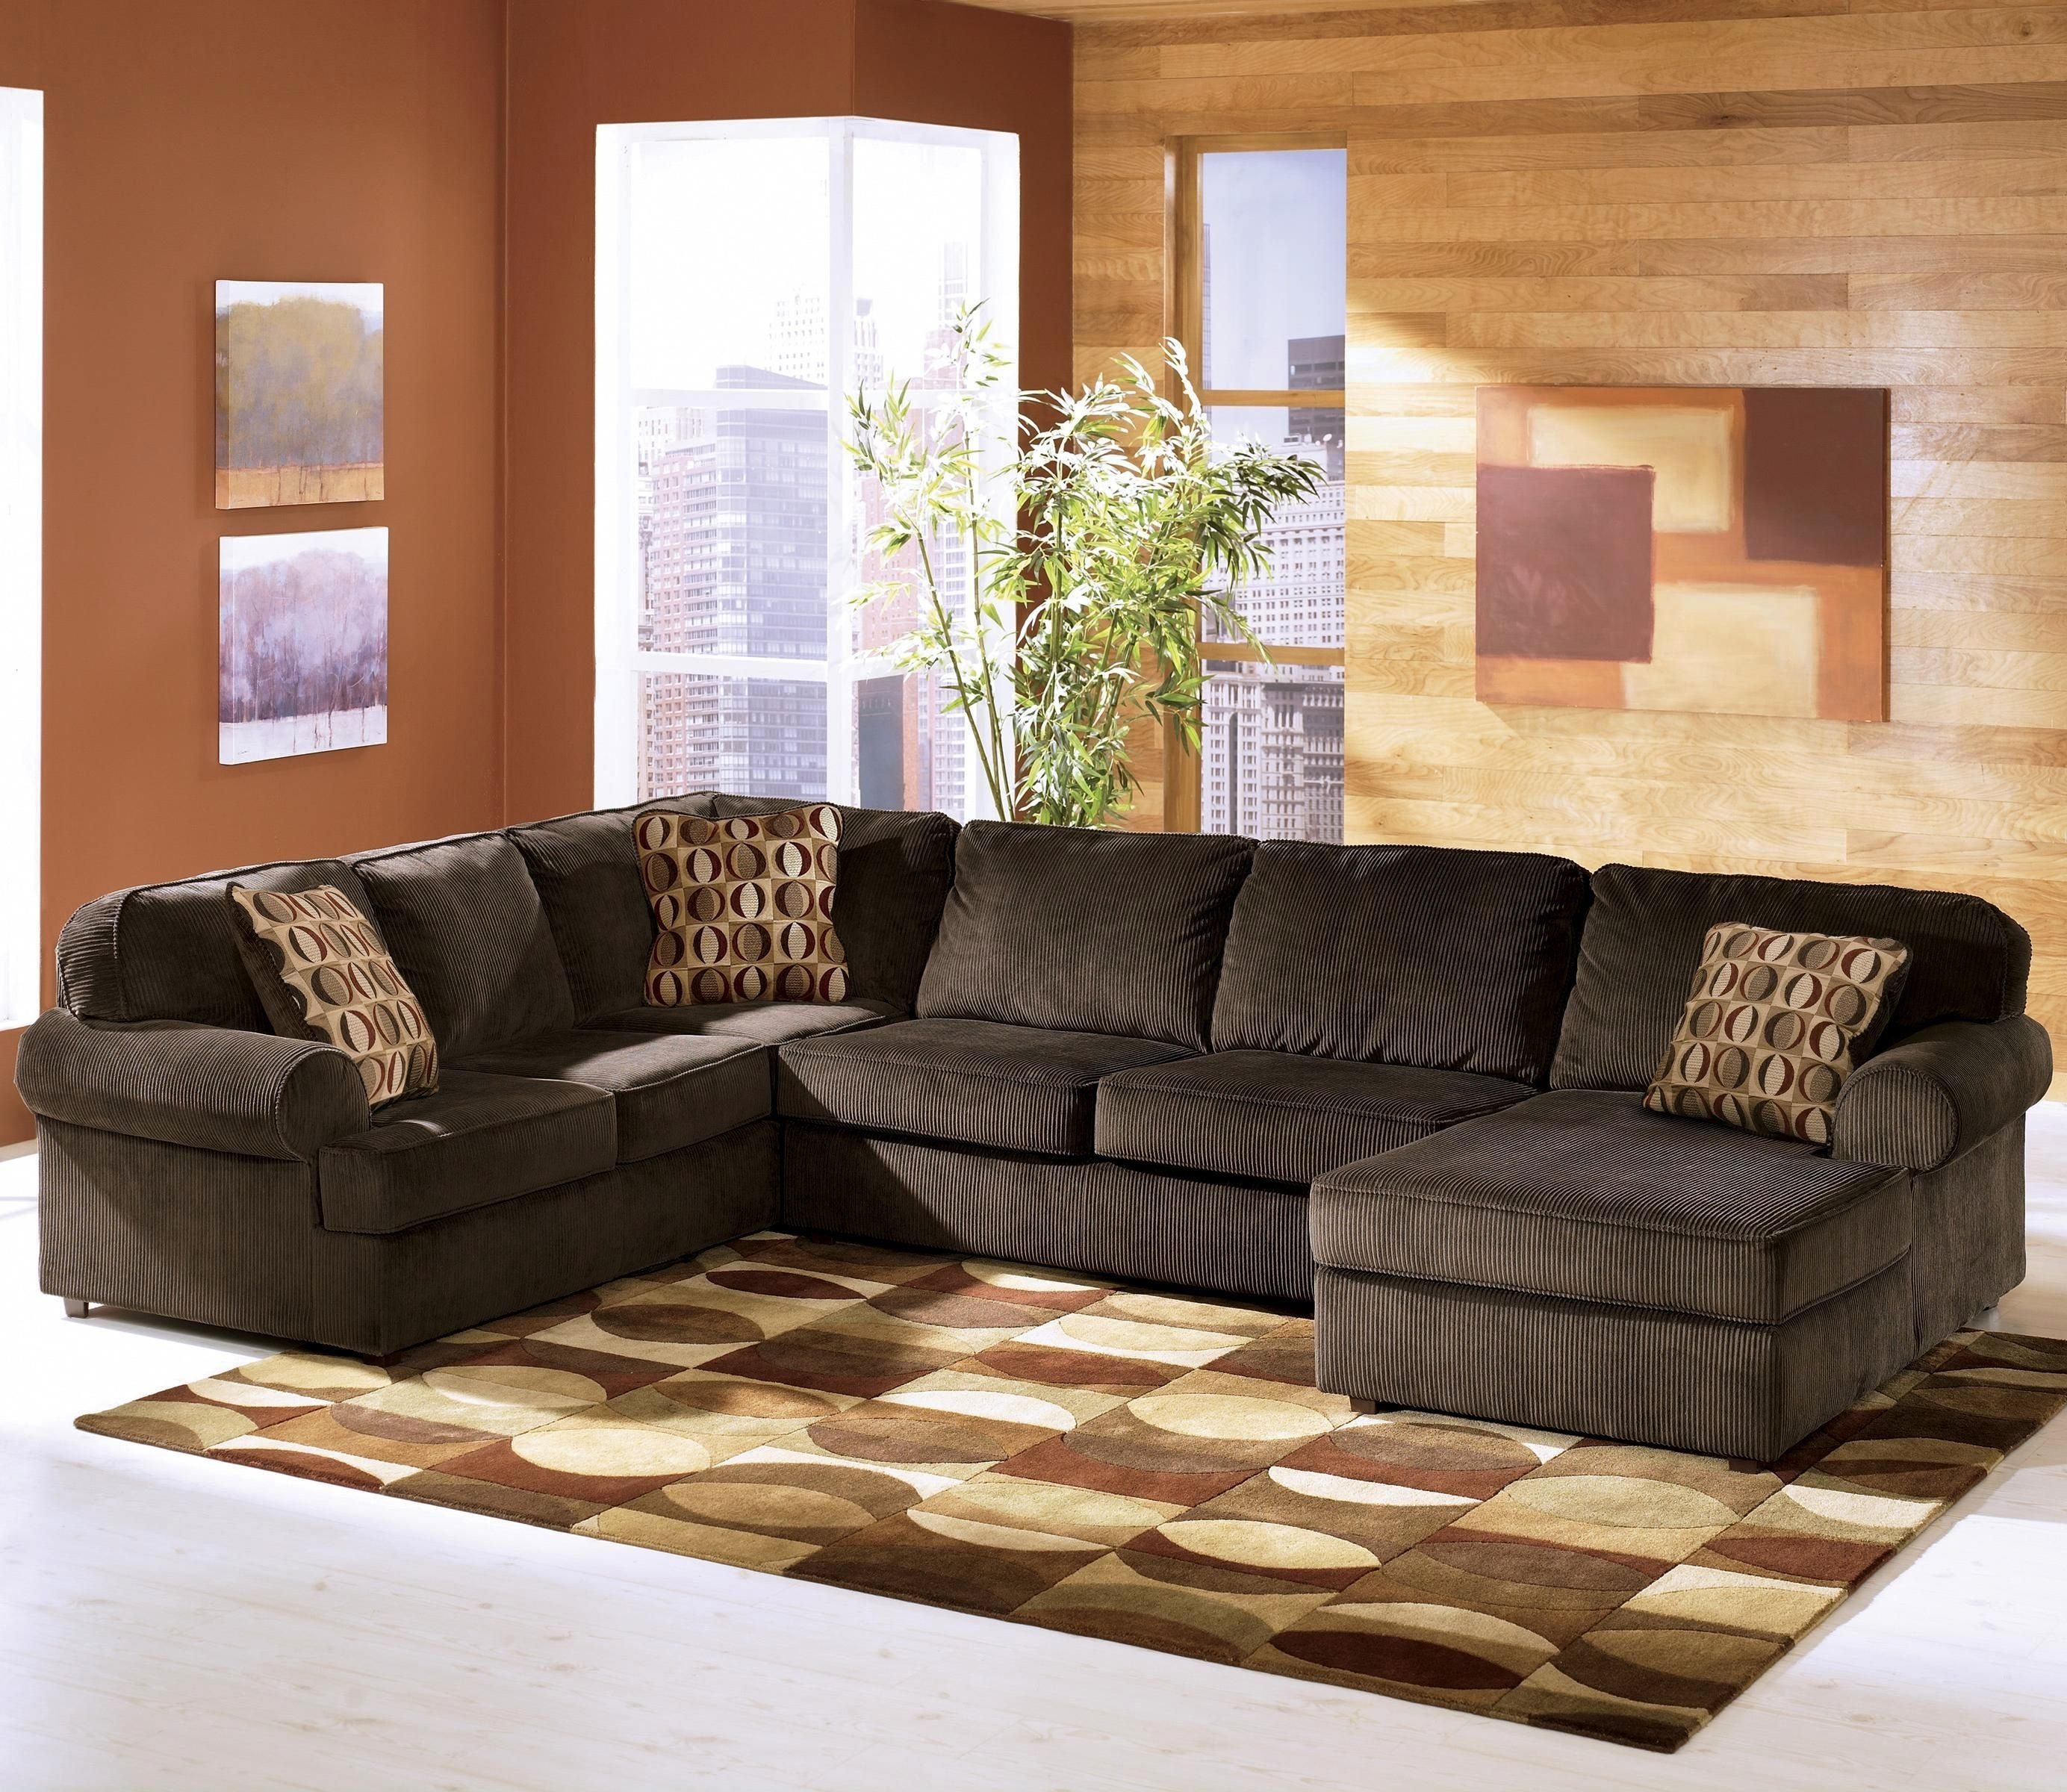 Ashley Furniture Hattiesburg Ms | Agrimarques In Hattiesburg Ms Sectional Sofas (View 2 of 10)